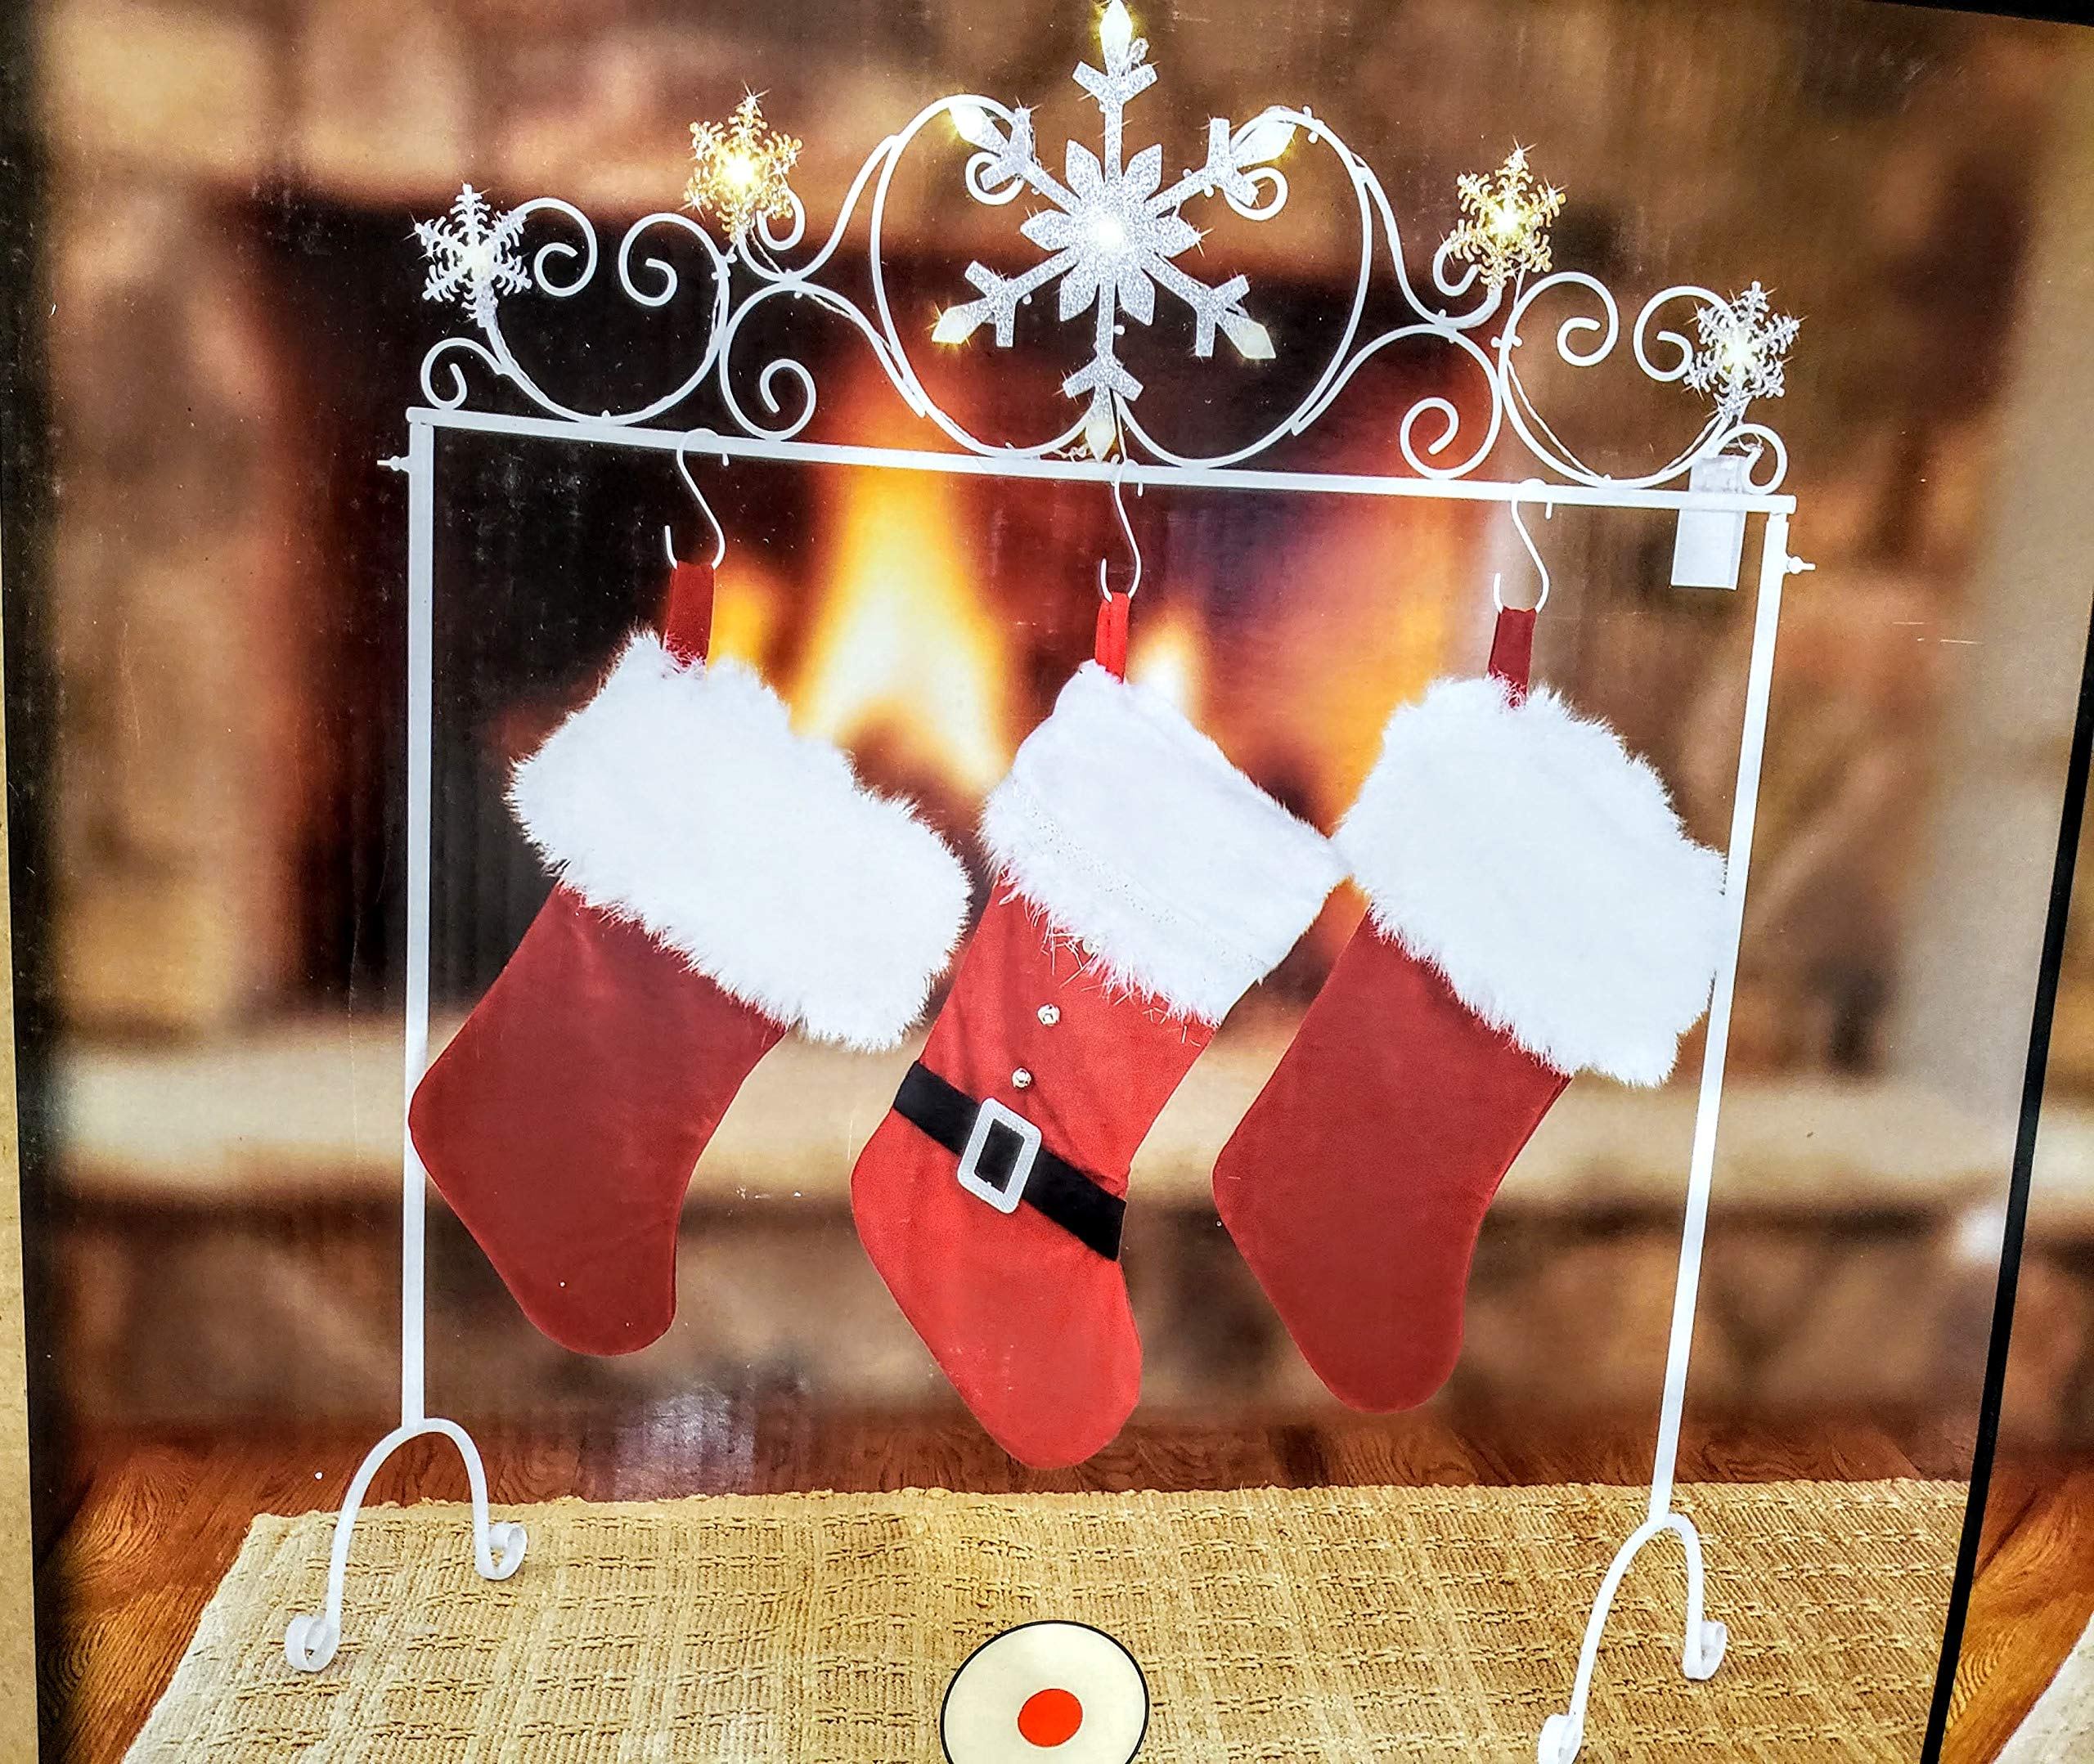 NTD Shiny LED Snowflakes Freestanding Stocking Holder Stand